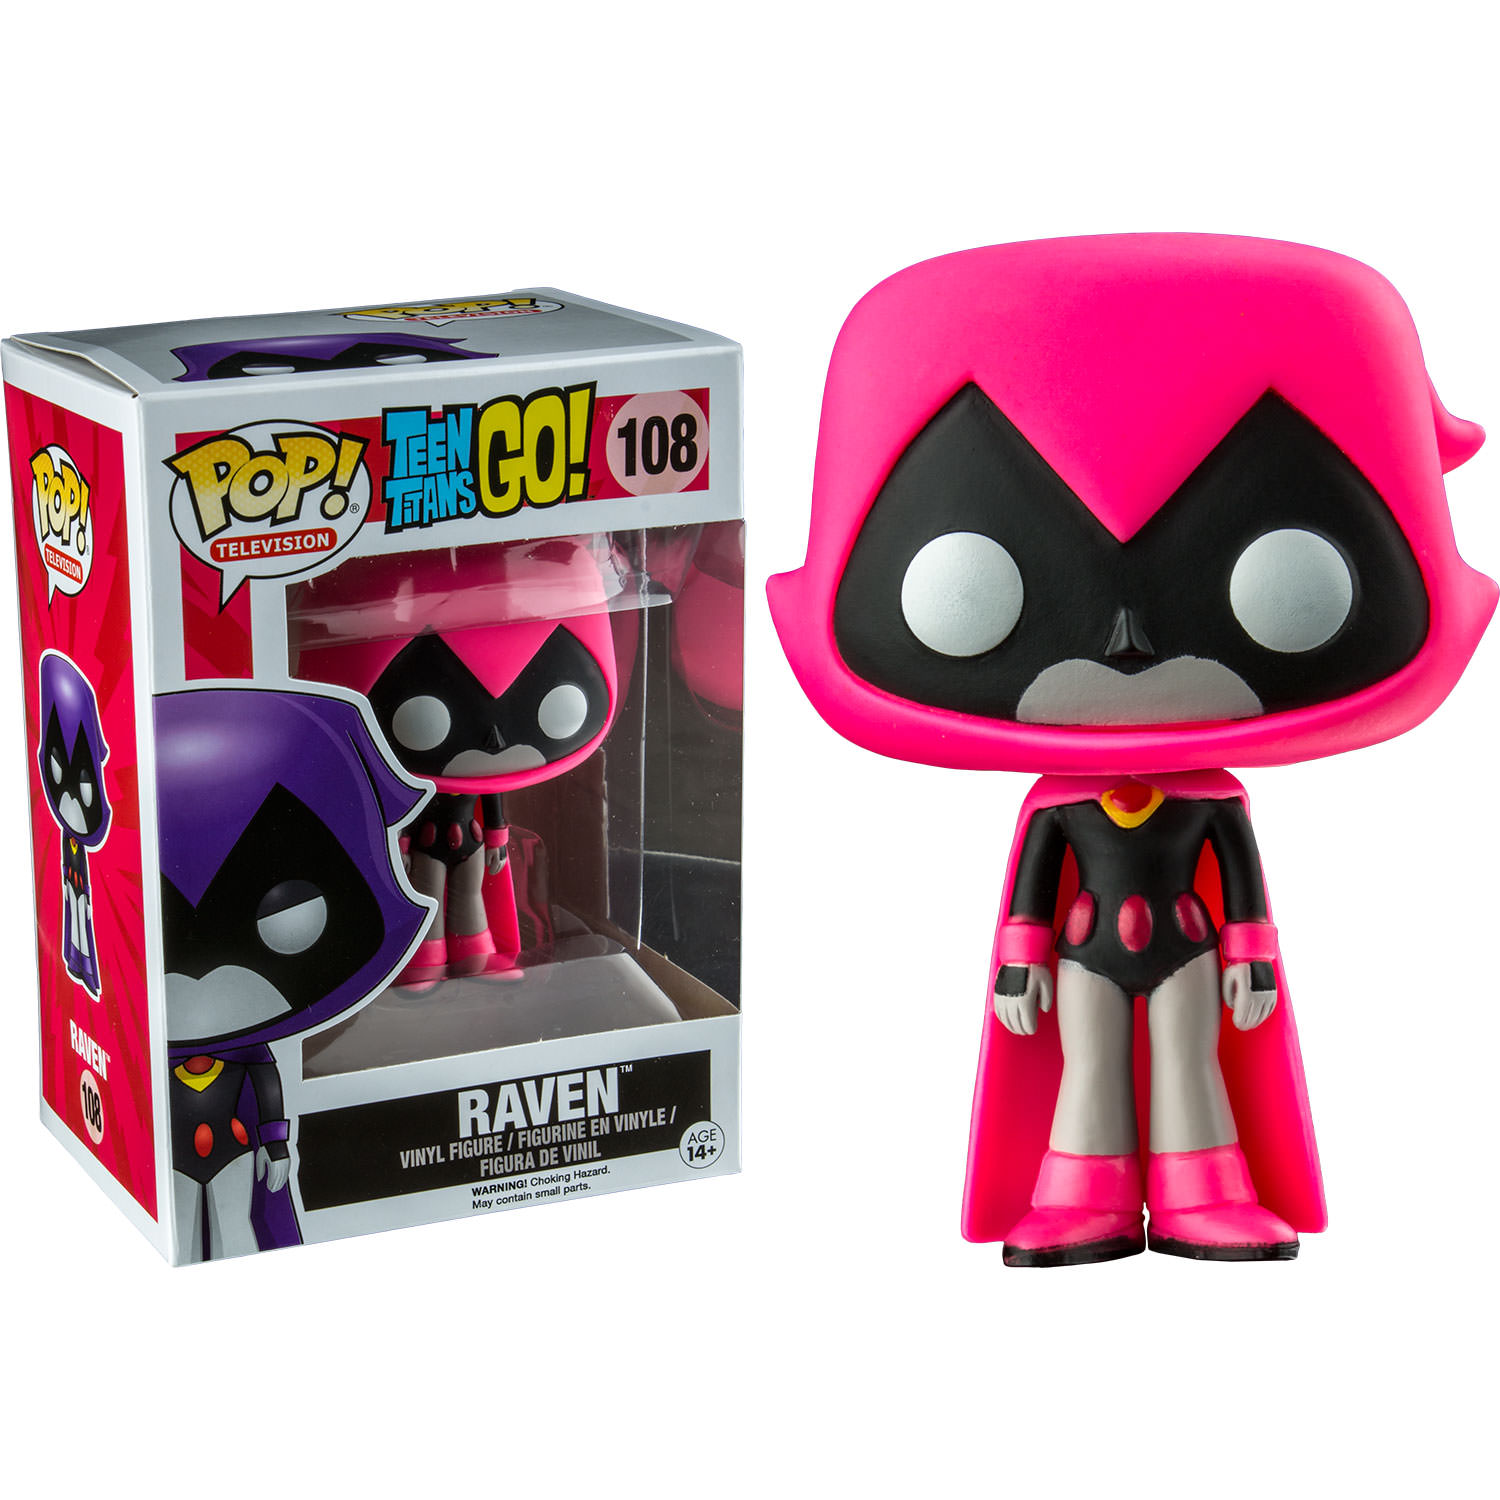 traxxas 1 8 scale with Funko Teen Titans Go Raven Pink Pop Vinyl Figure on modellbau Profi as well Funko Teen Titans Go Raven Pink Pop Vinyl Figure together with Watch together with C1355 moreover Lego 75160 Star Wars U Wing Microfighter.